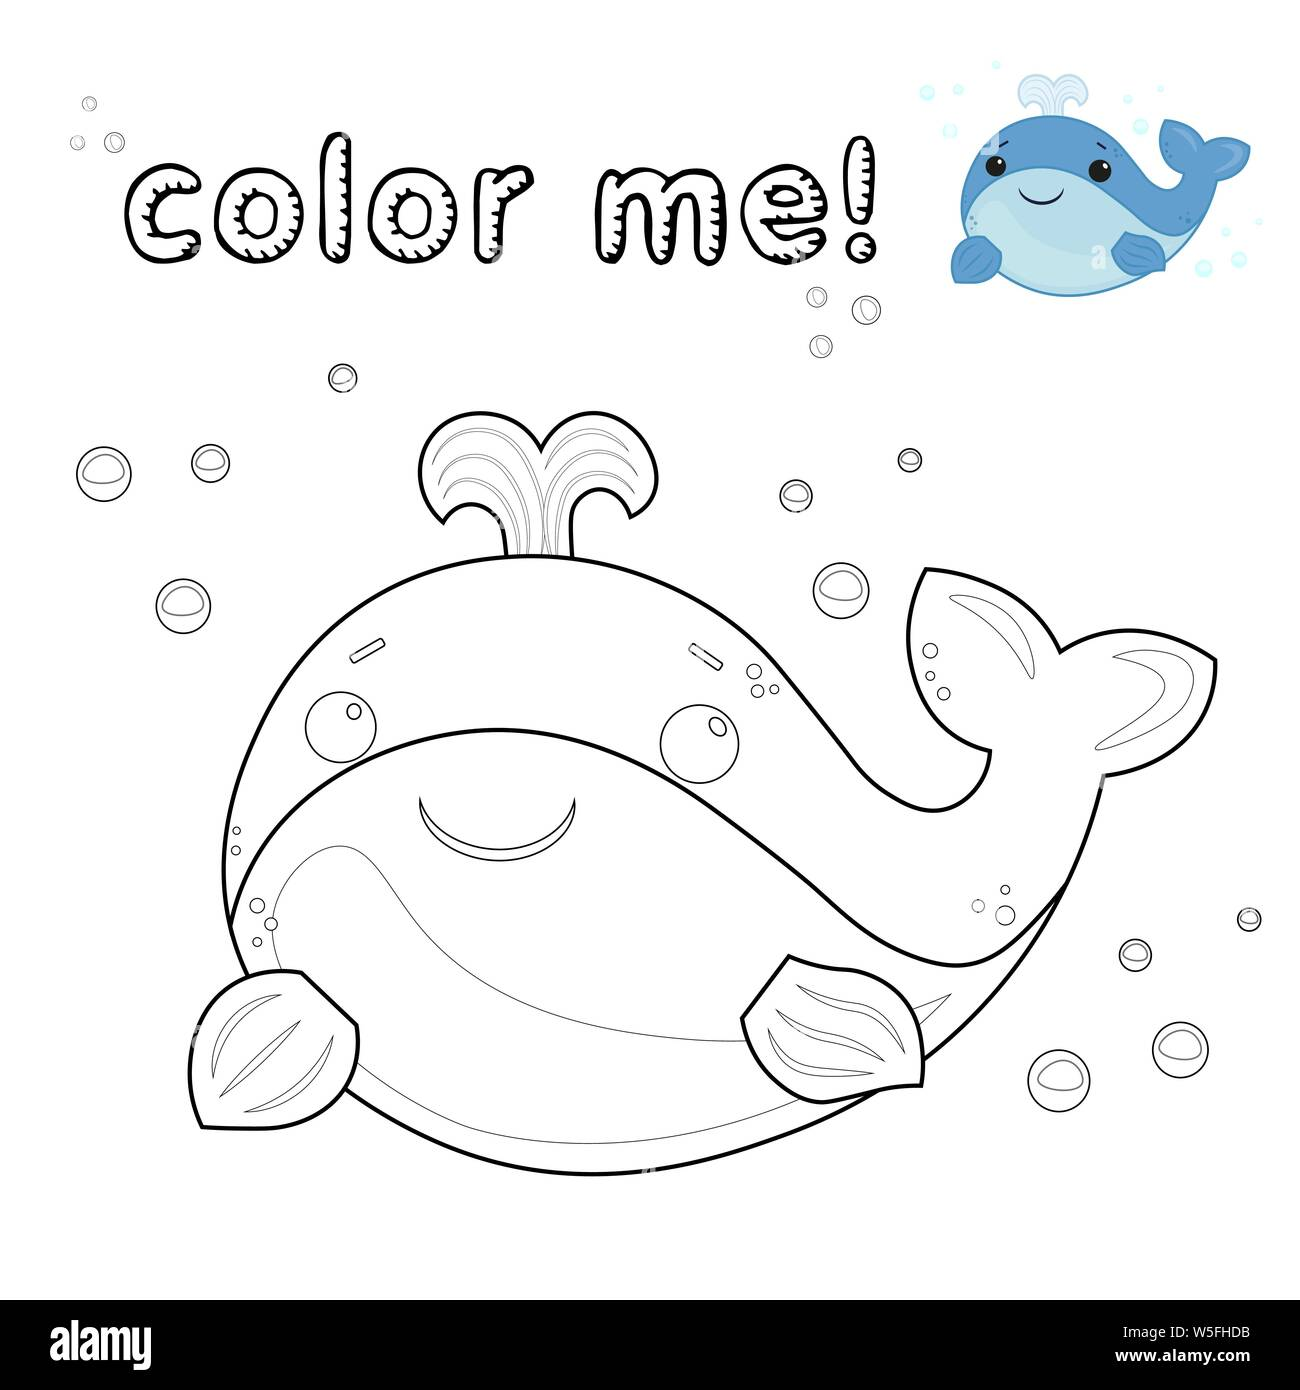 Game For Kids Outline Whale Coloring Page Black And White Whale Cartoon Character Vector Illustration Isolated On White Background Marine Animals Stock Vector Image Art Alamy